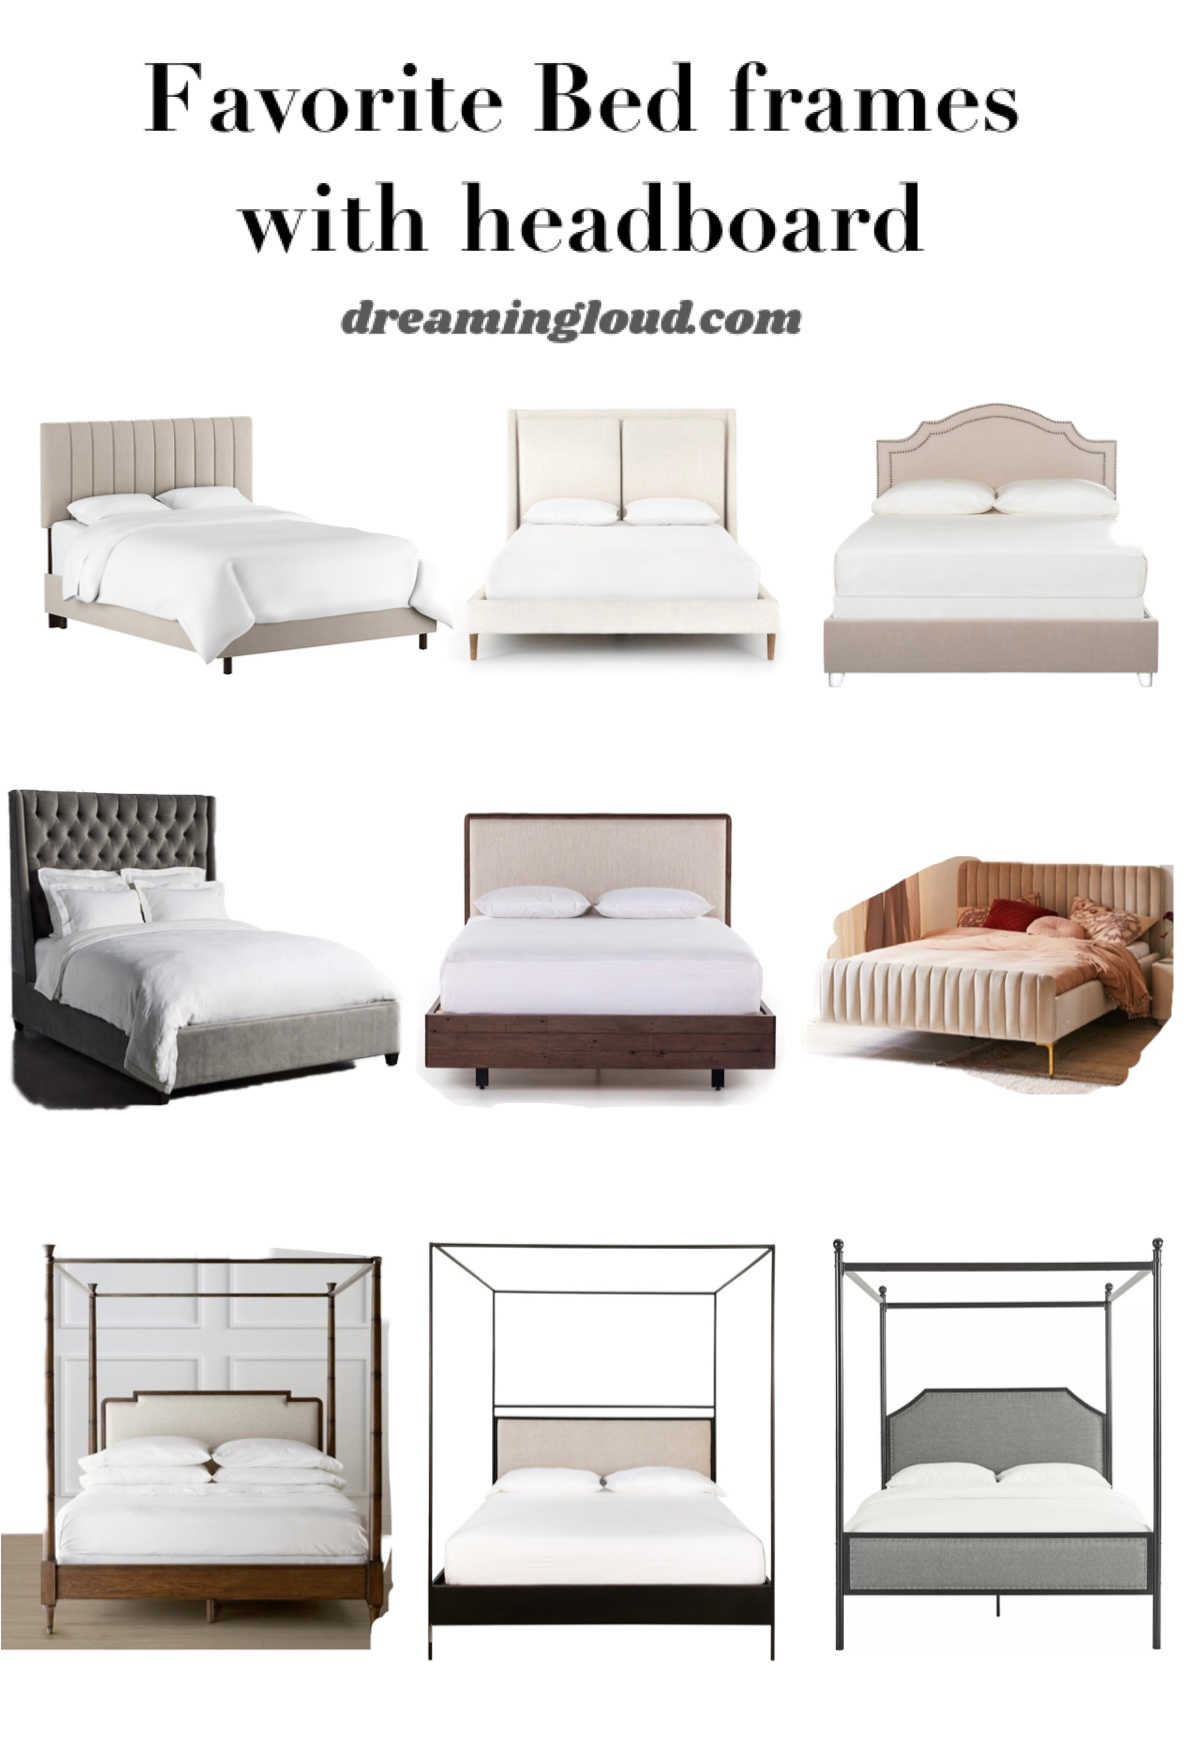 Bed frames with headboards on sale |Kitchen Black Friday Deals by popular Maryland lifestyle blog, Dreaming Loud: collage image of bed frames with headboards.